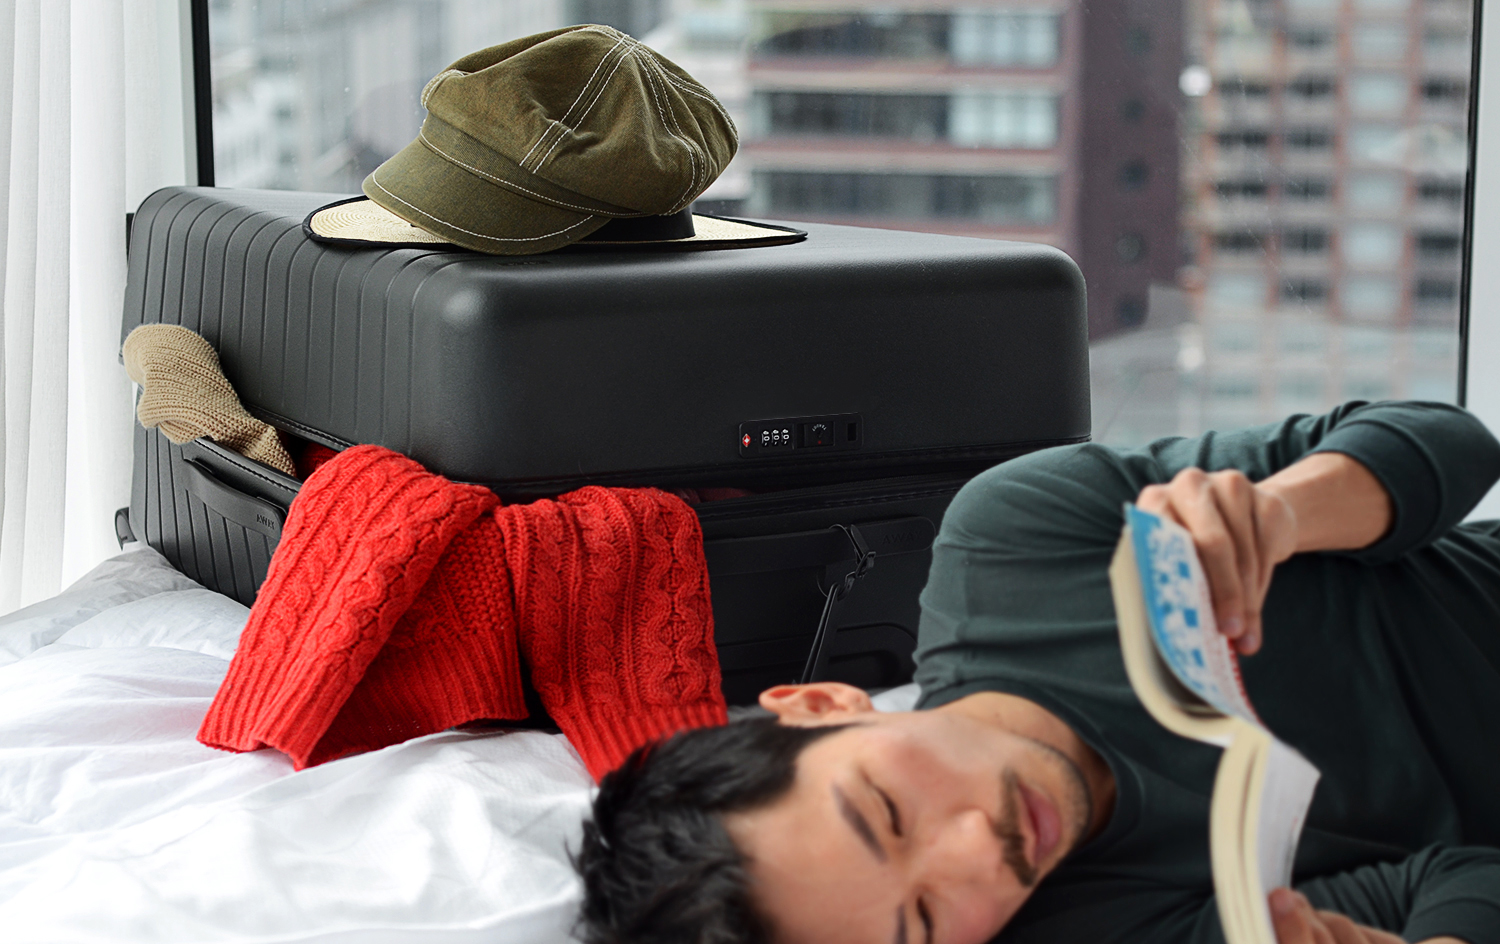 Away luggage, Affordable luggage